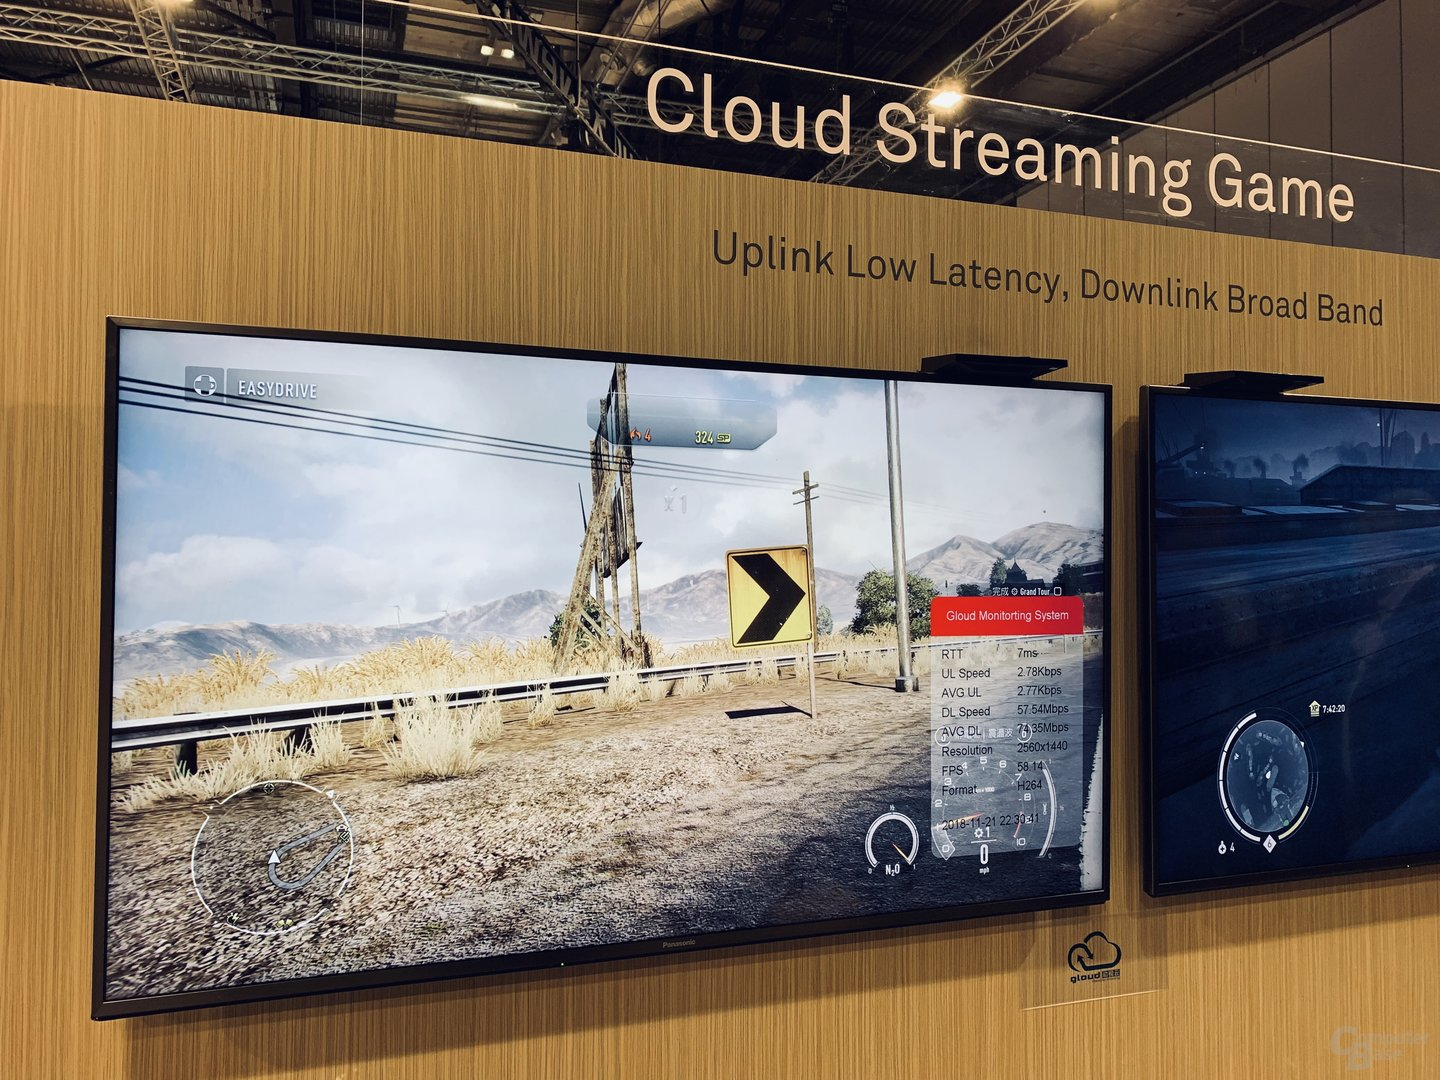 Cloud-Gaming in 1440/60p via Mobilfunk demonstriert von Huawei